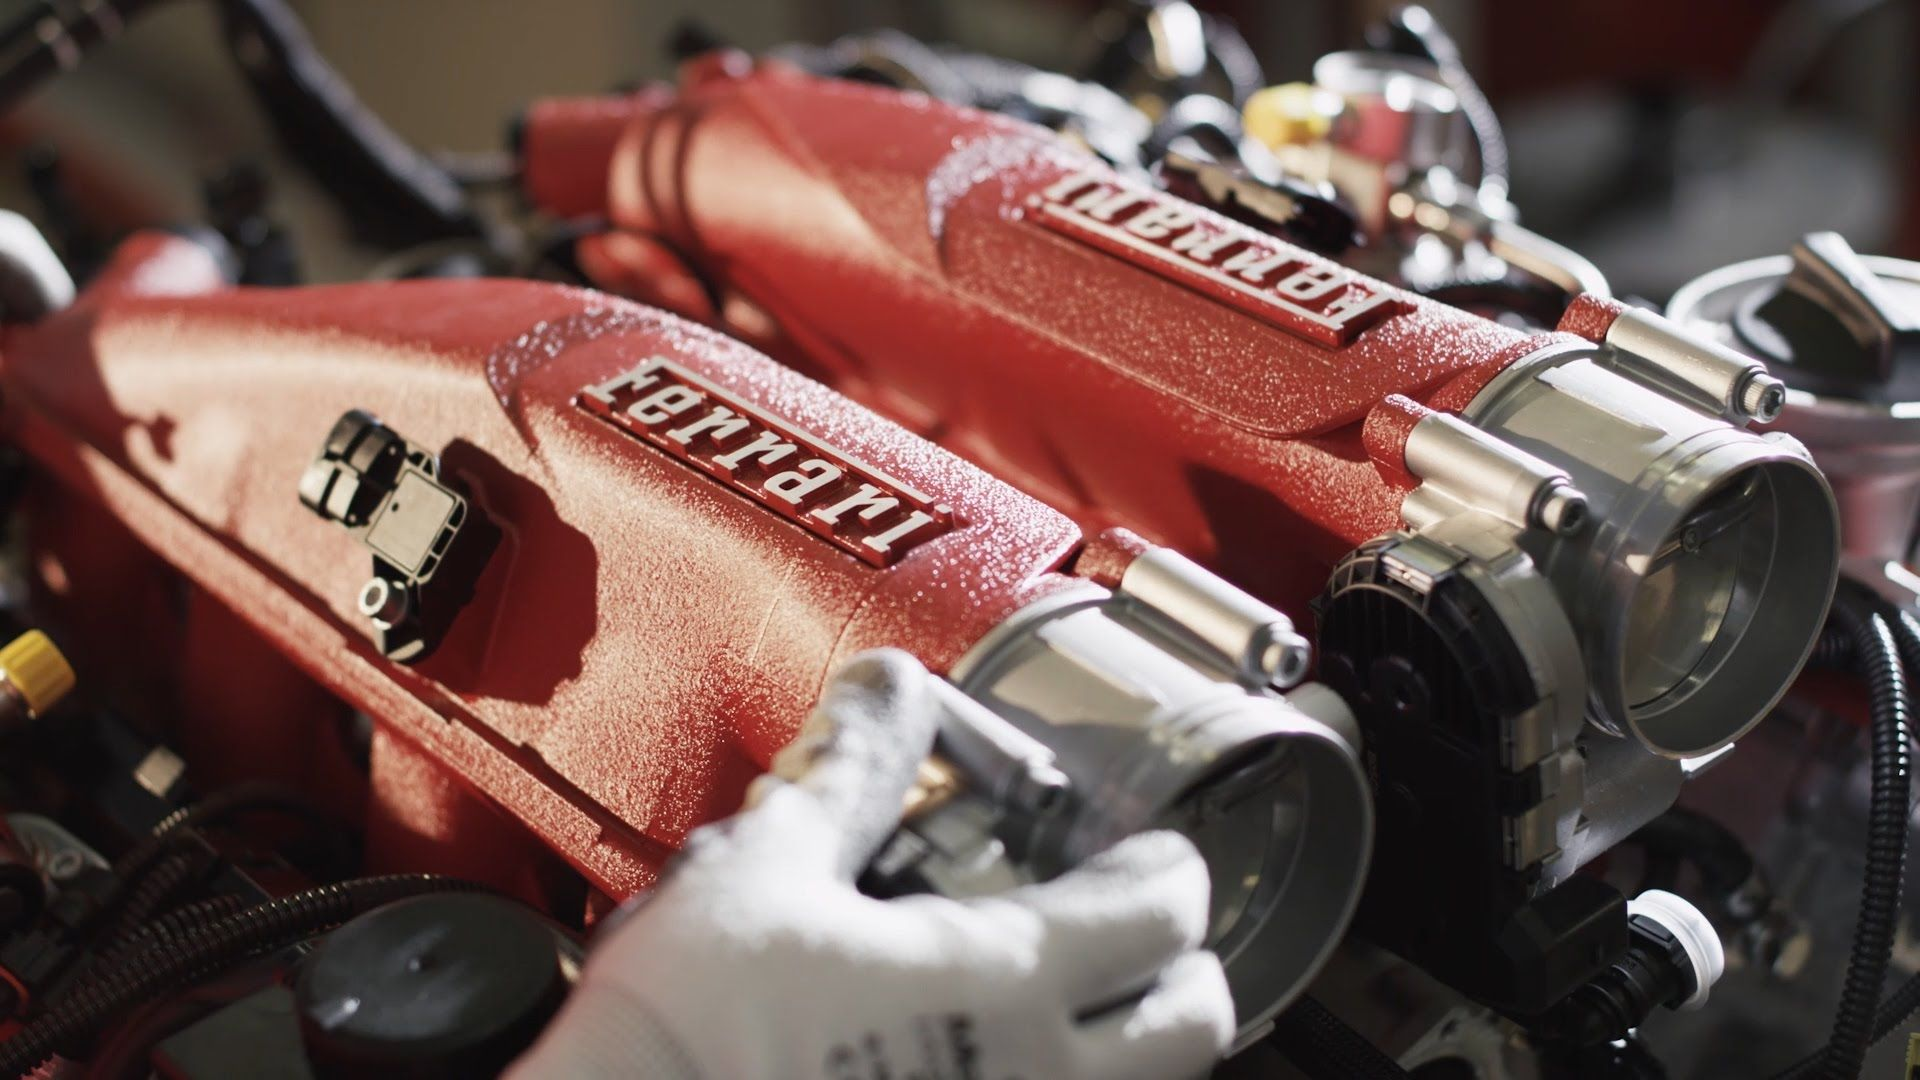 Ferrari. Empowered by Innovation. And Infor